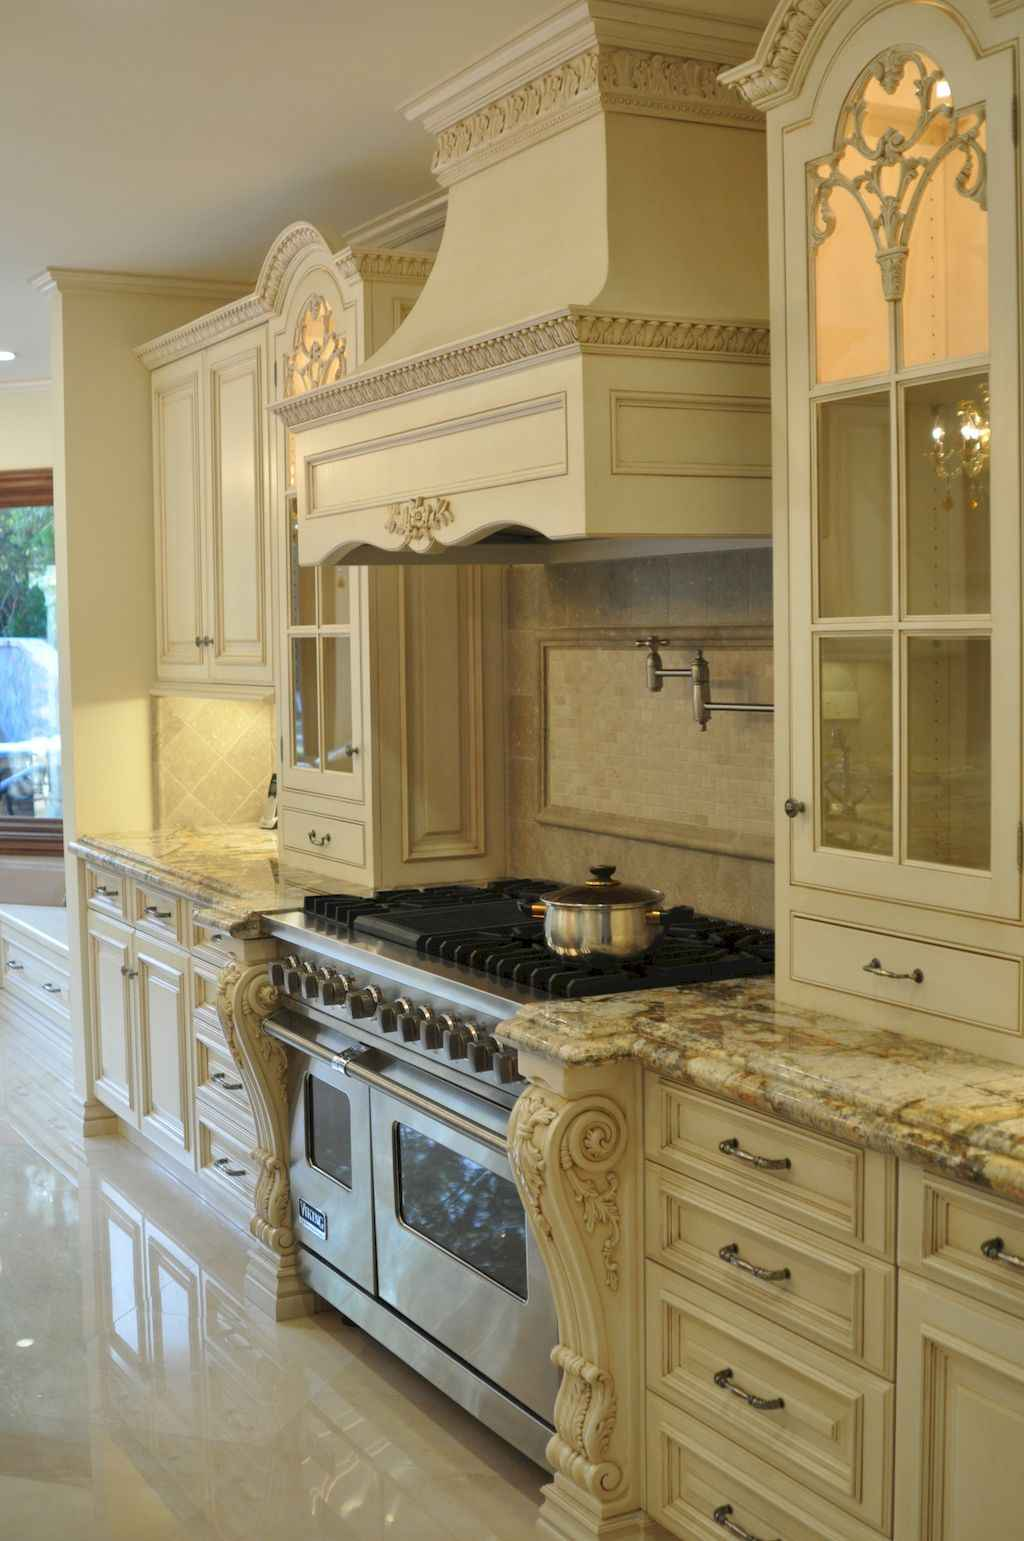 Incredible french country kitchen design ideas (21)